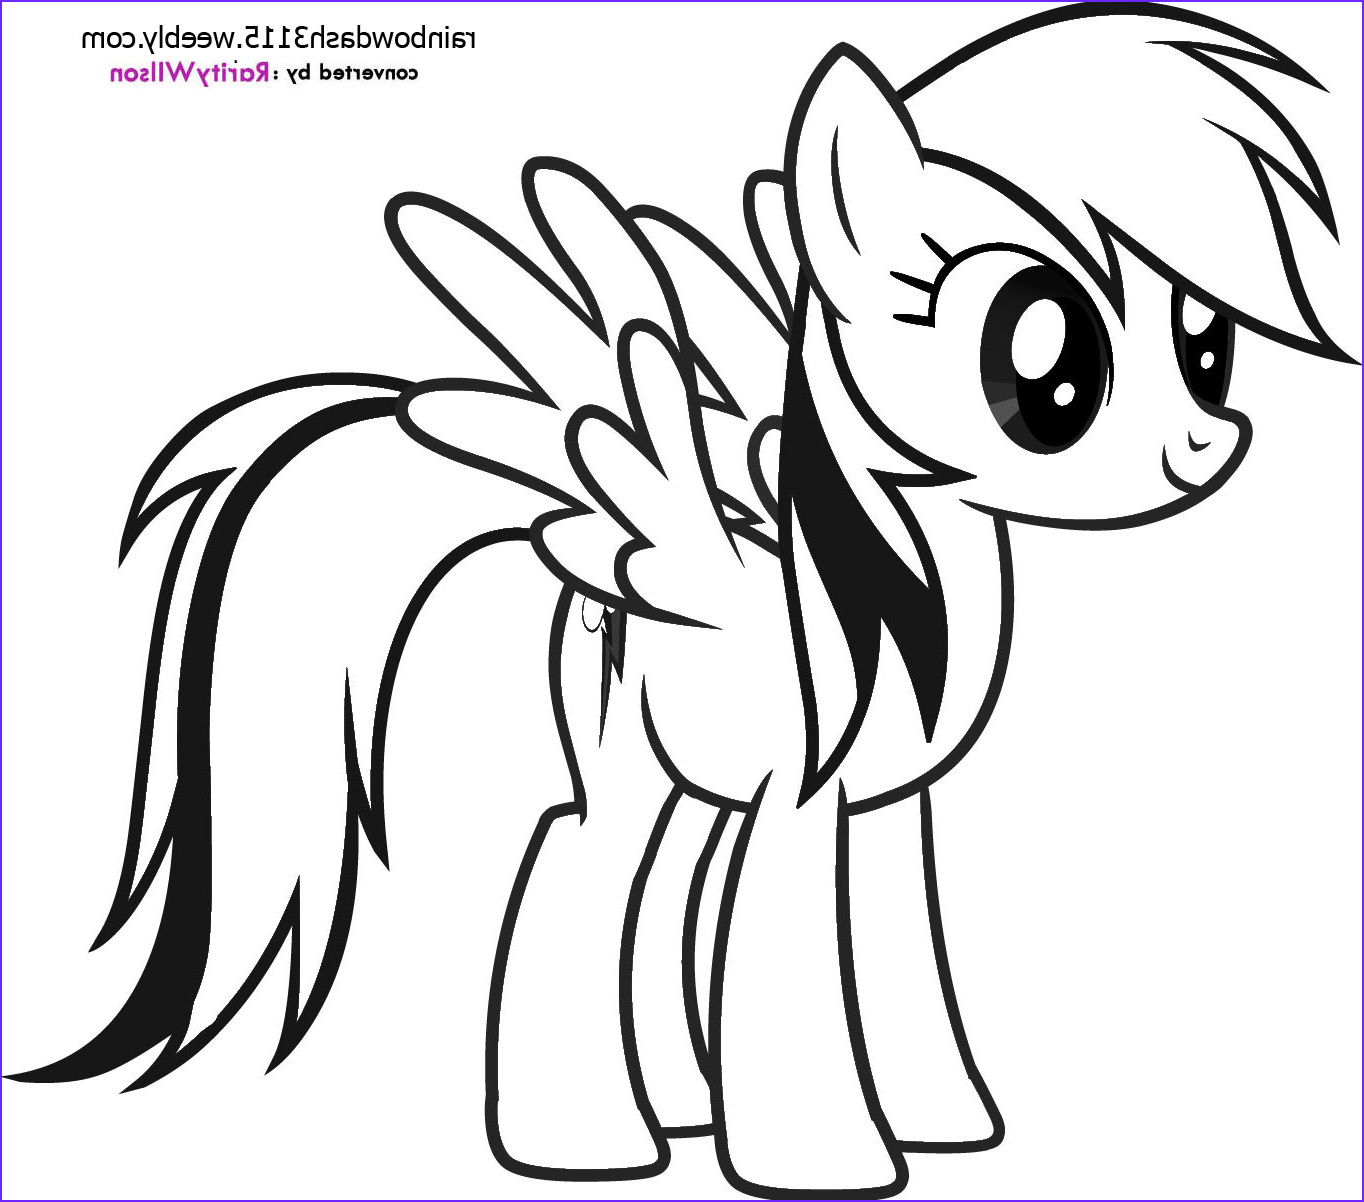 Coloring Pages My Little Pony New Gallery My Little Pony Coloring Pages